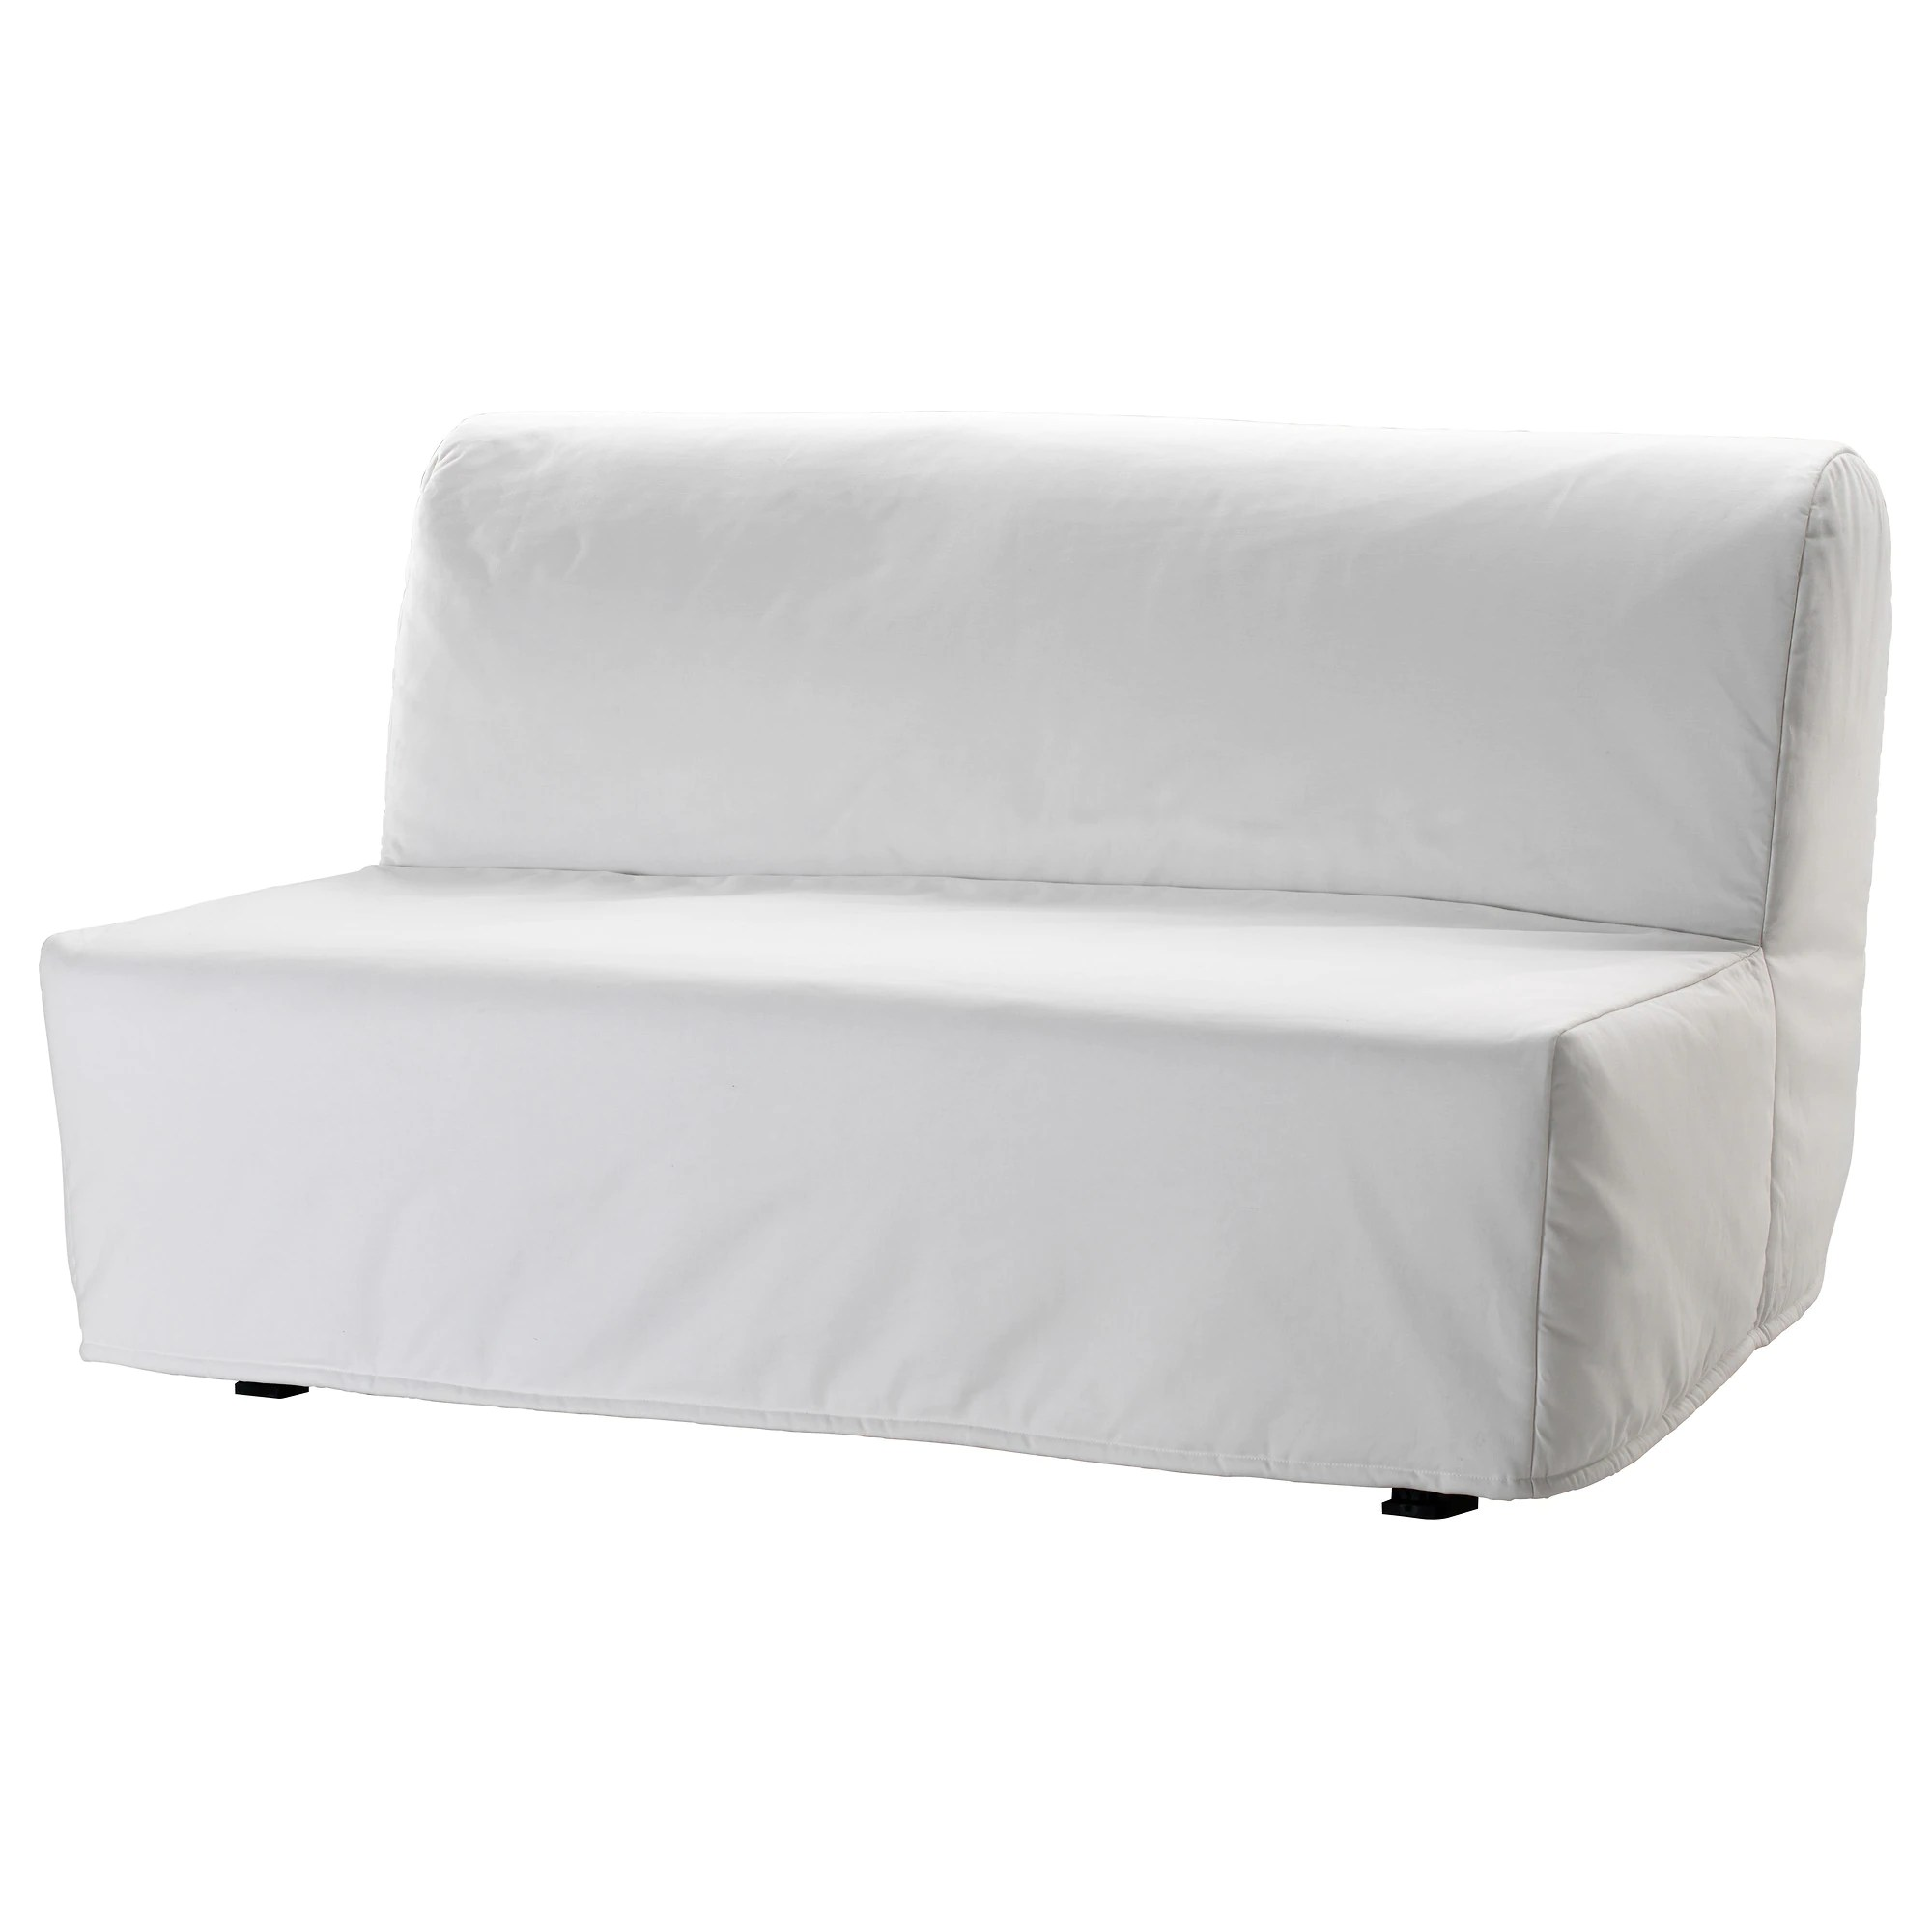 2 Seater Ikea Sofa Cover Lycksele LÖvÅs Sleeper Sofa Ransta White